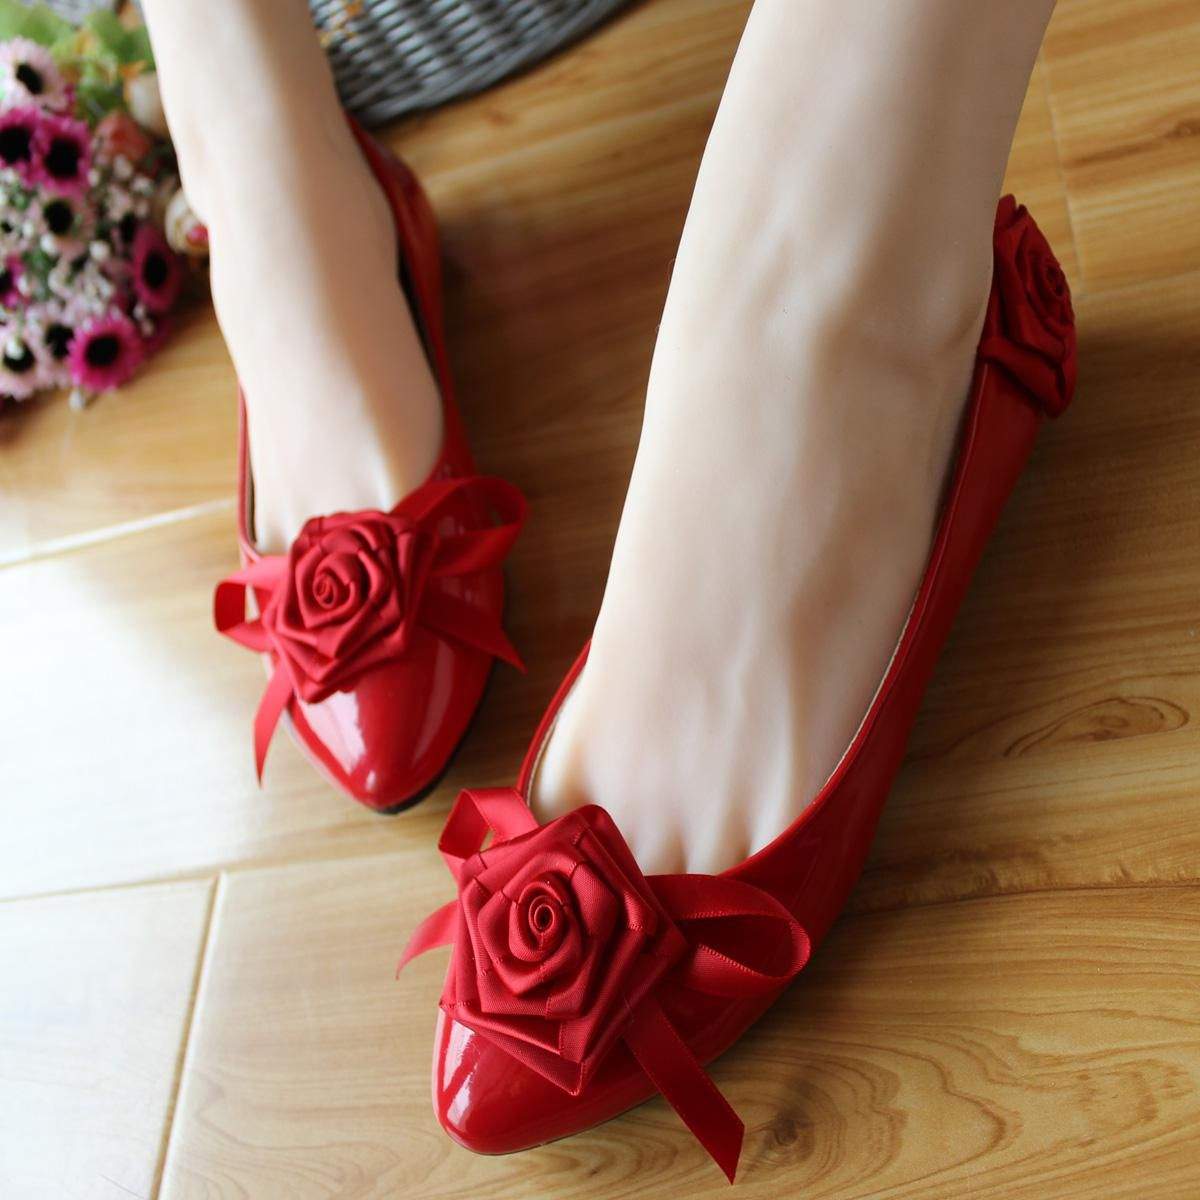 Wholesale Dress Shoes Buy Aesthetic Handmade Wedding Shoes Red Bow Flat Rose Bridal Low Heeled Bridal Shoes Flats Wedding Shoes Flats Handmade Wedding Shoes